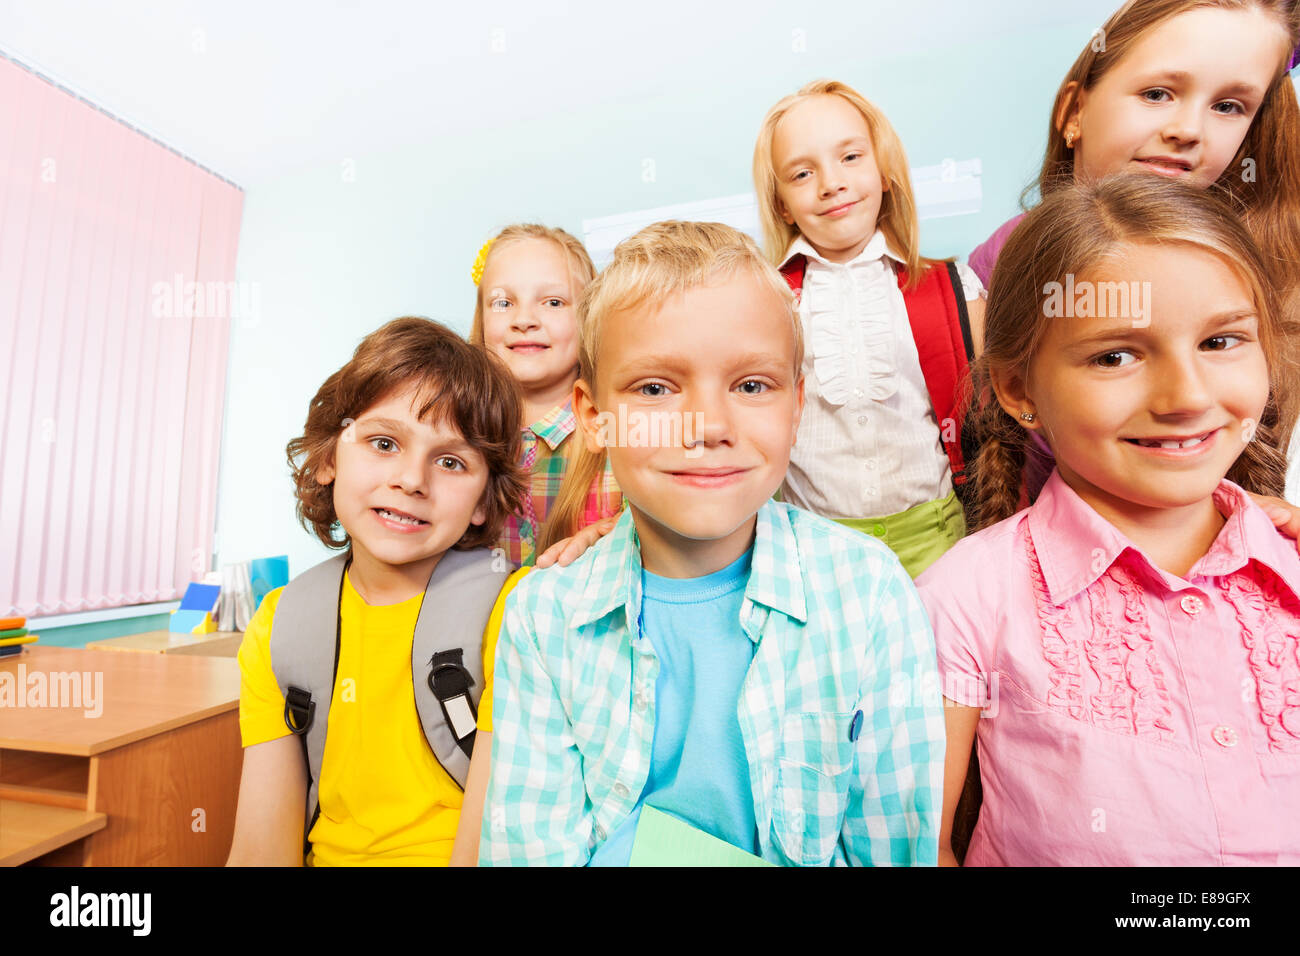 Kids sit near desk and smile in classroom - Stock Image